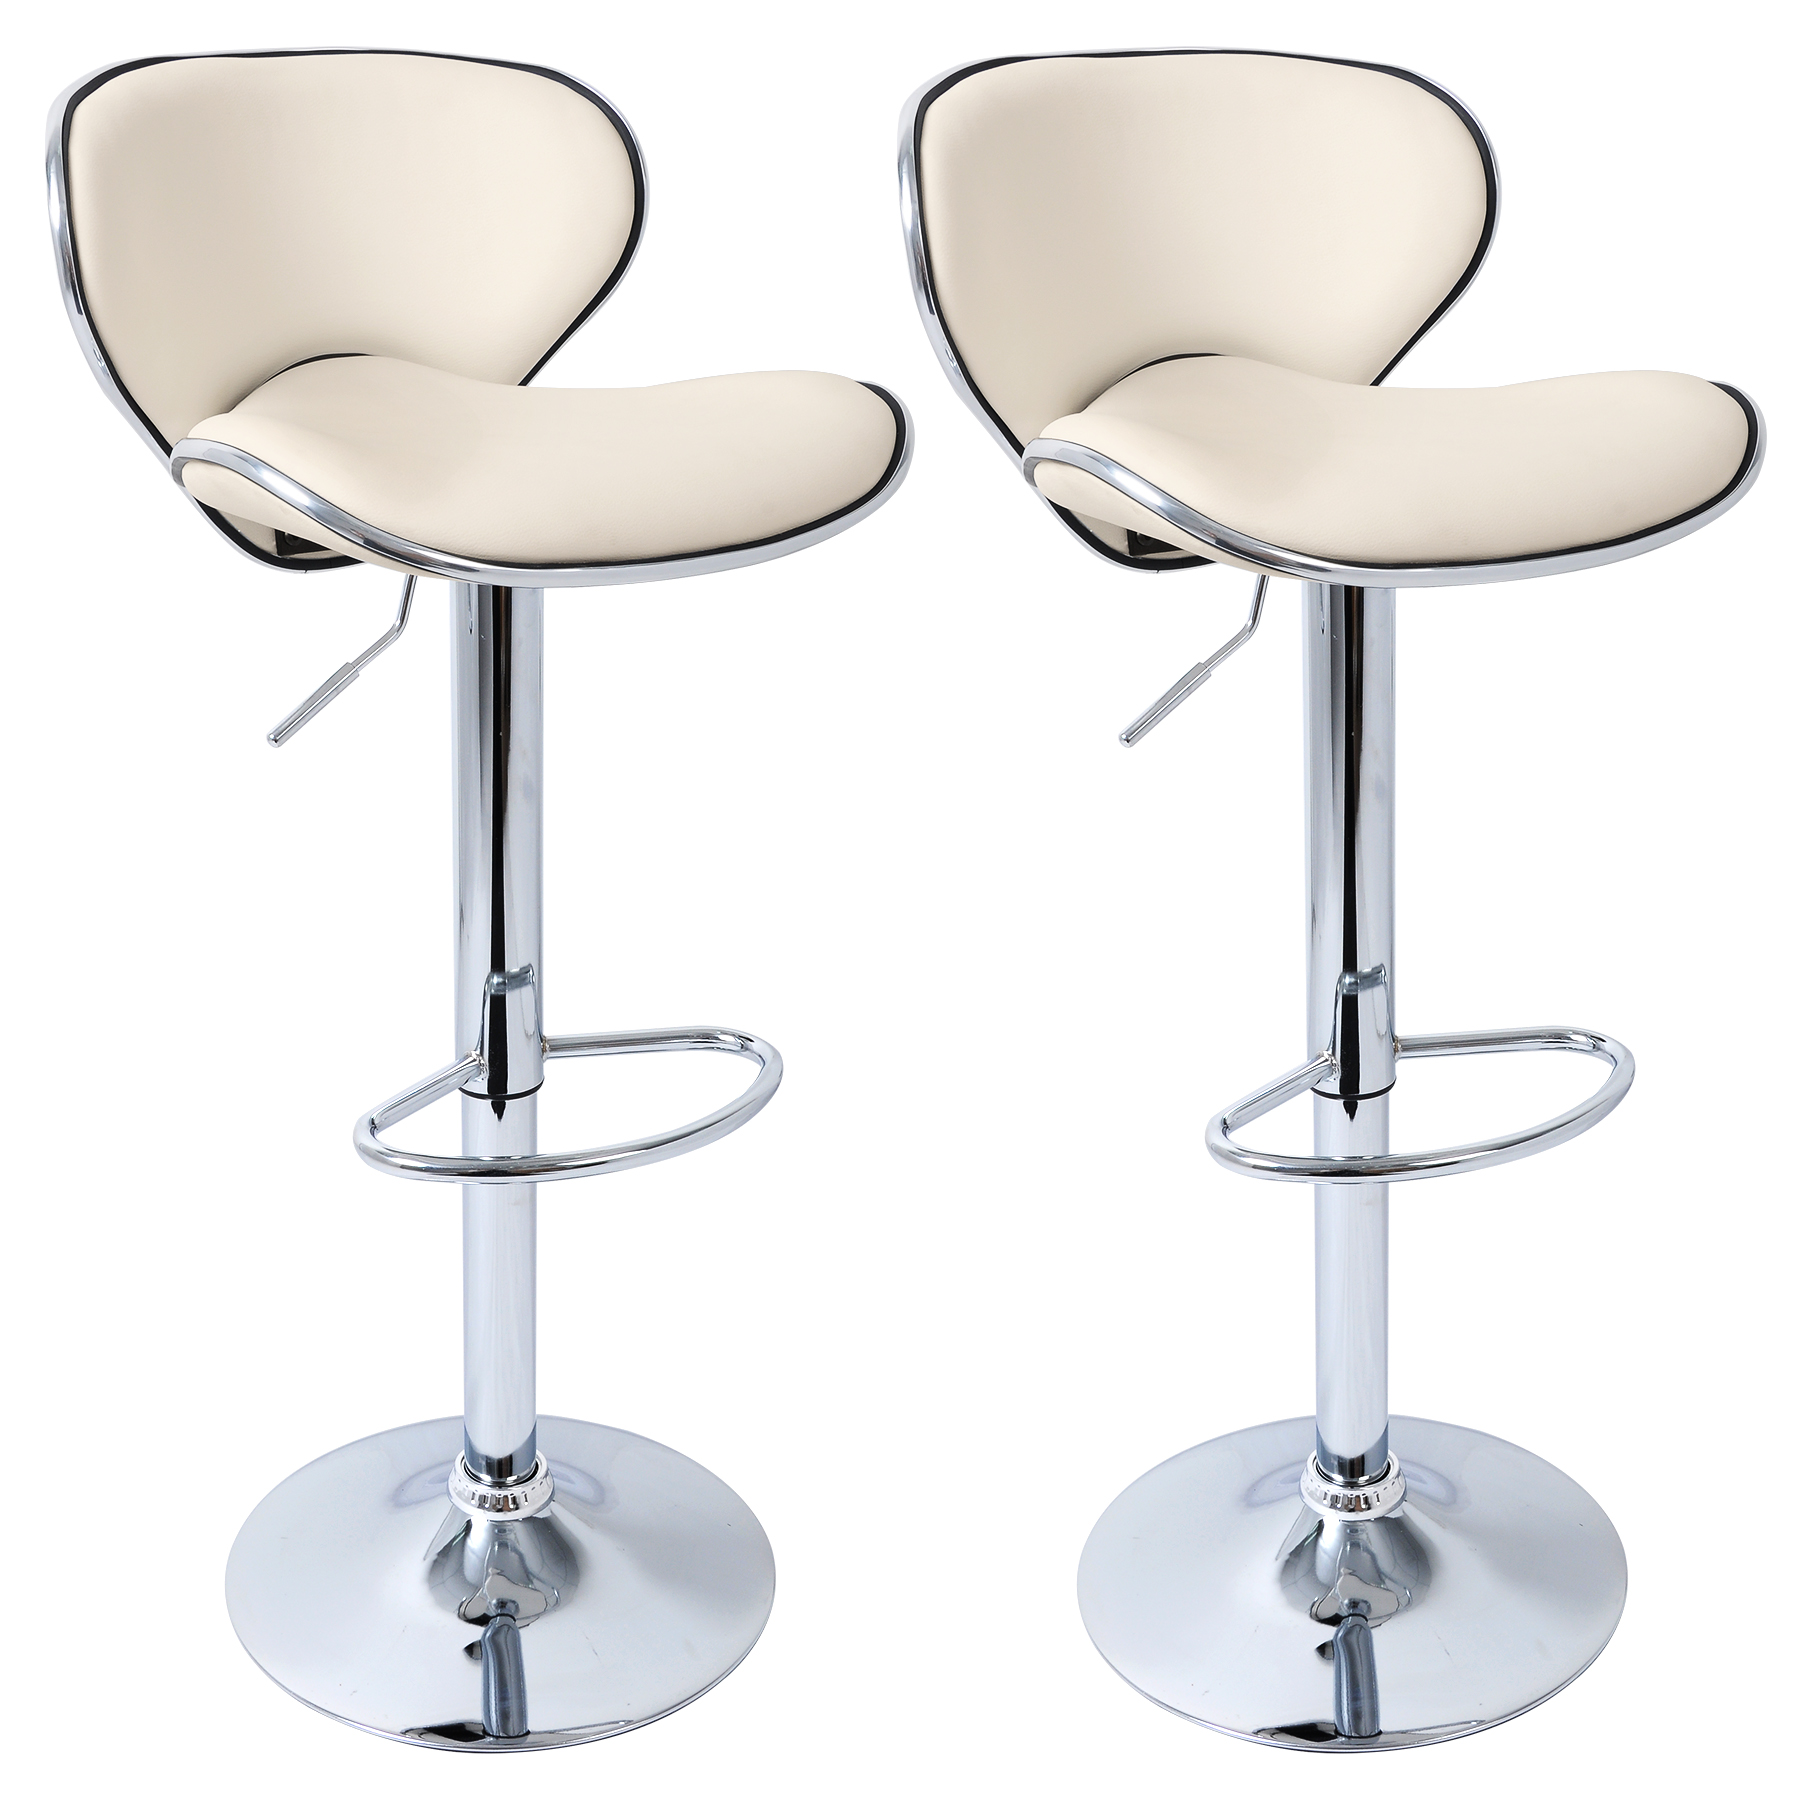 2 X Bar Stools Kitchen Chair Swivel Breakfast Stool Chrome Barstools Cream U021 Ebay